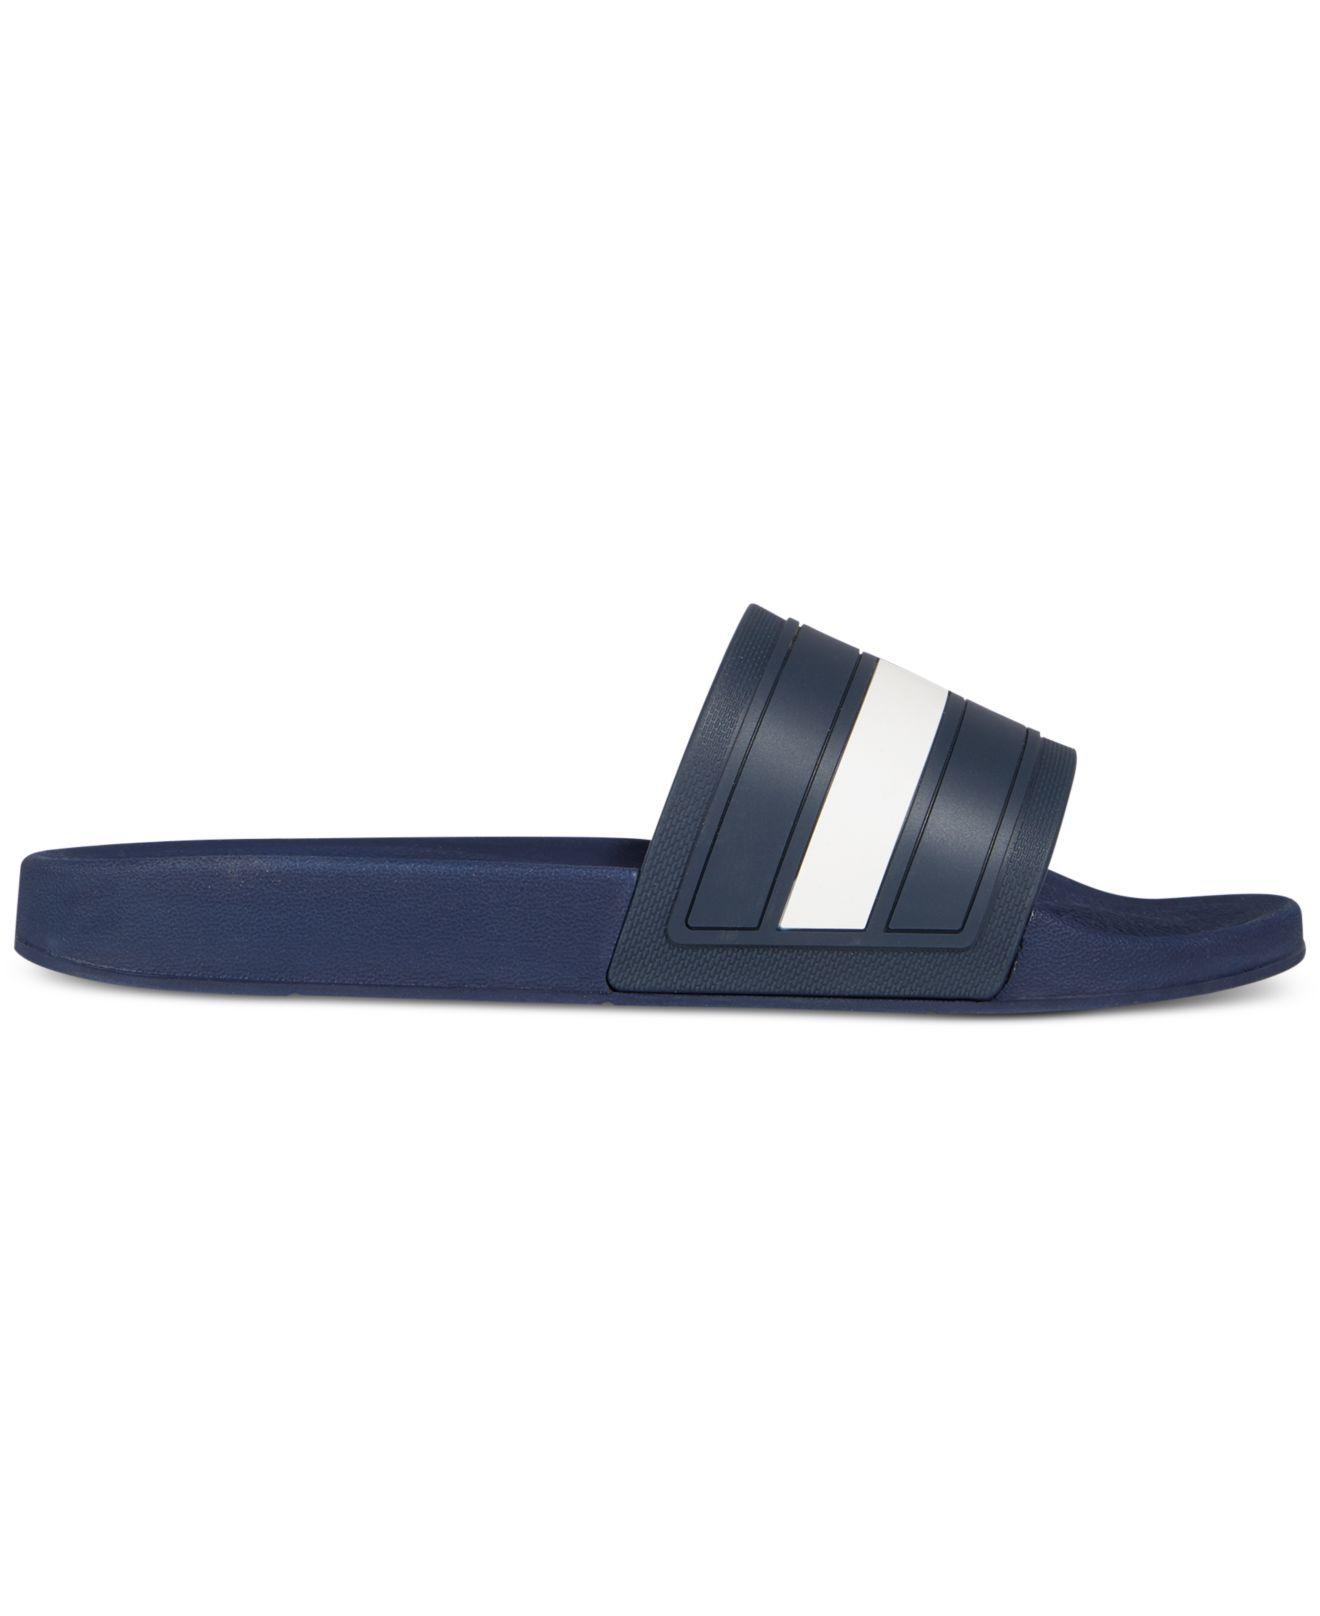 da5836fe619e4 Lyst - Tommy Hilfiger Men s Elwood Slide Sandals in Blue for Men